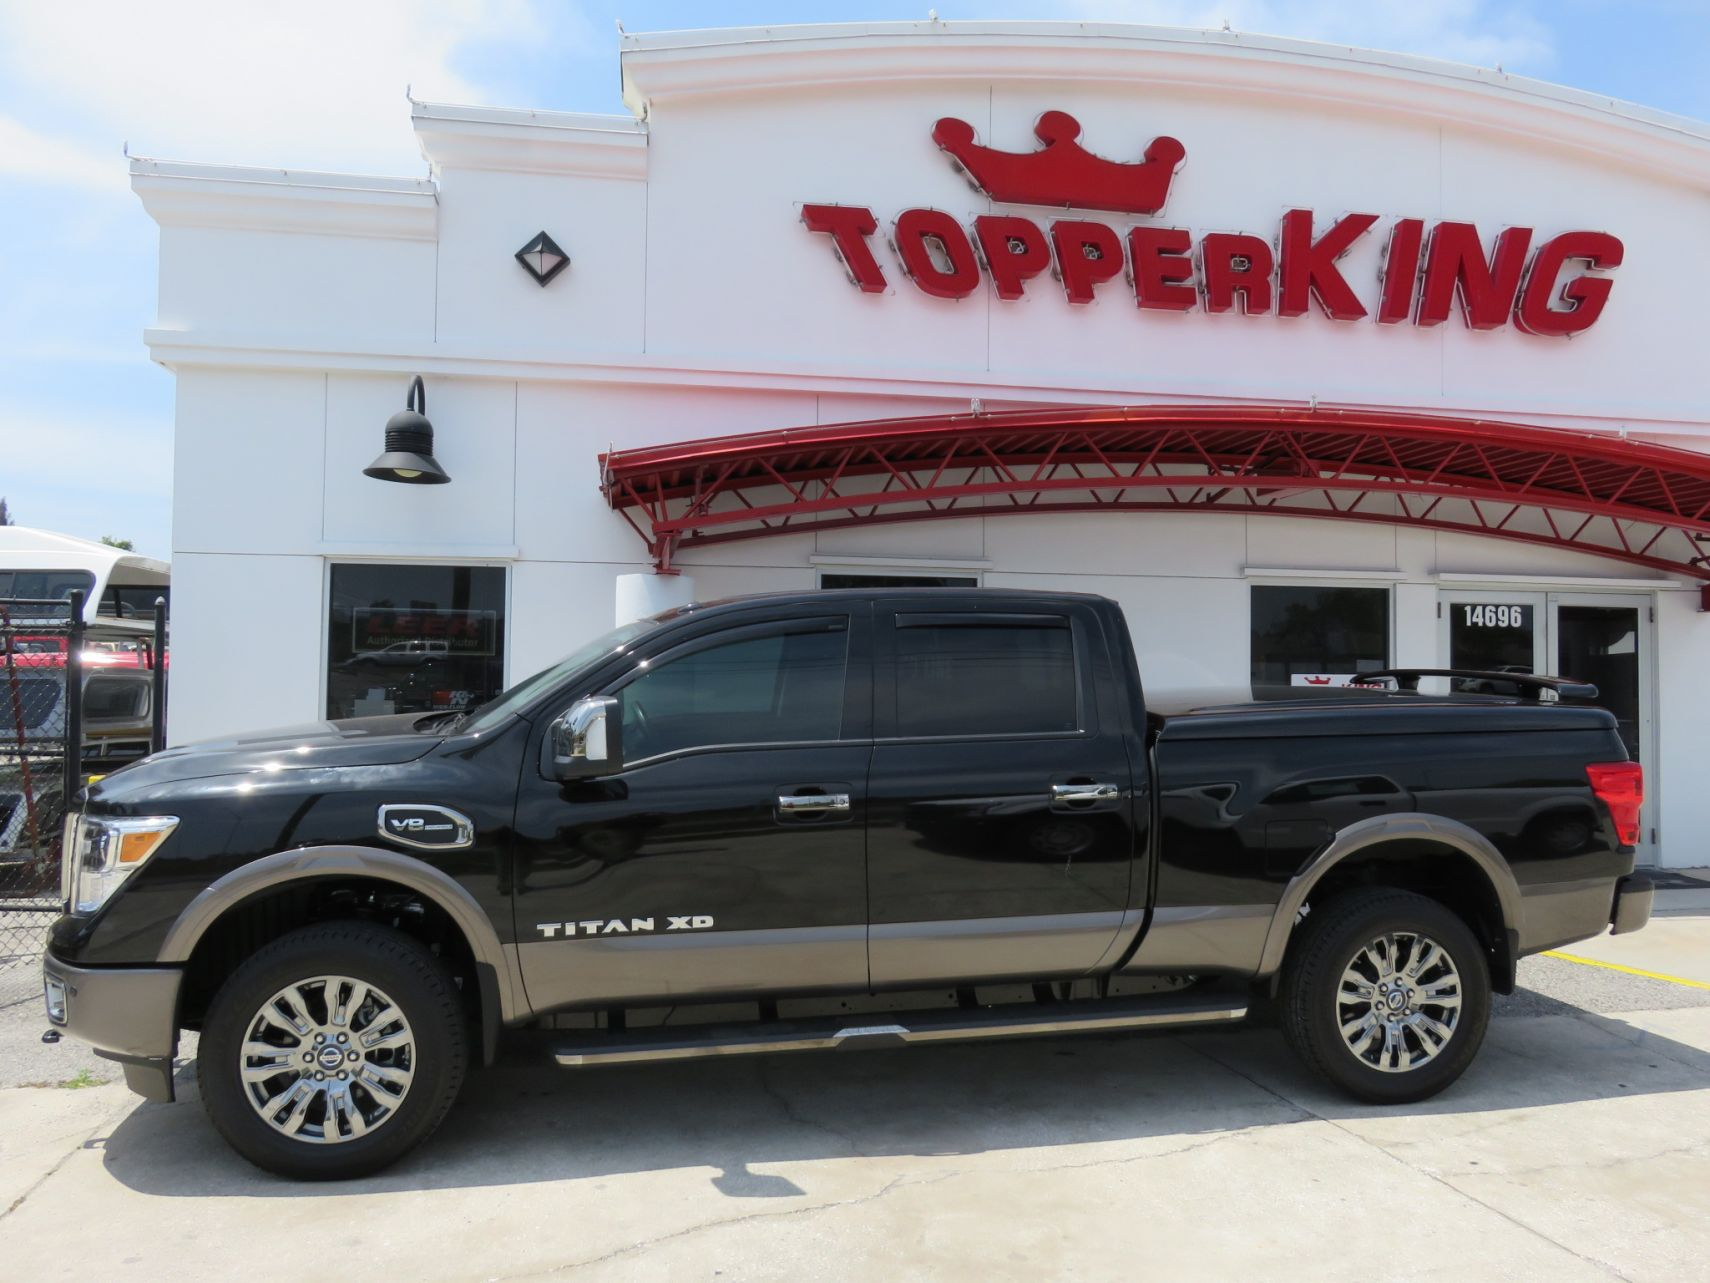 2018 Black Nissan Titan Ranch Legacy, Running Boards, Vent Visors, and Tint by TopperKING in Brandon, FL 813-689-2449 or Clearwater, FL 727-530-9066.